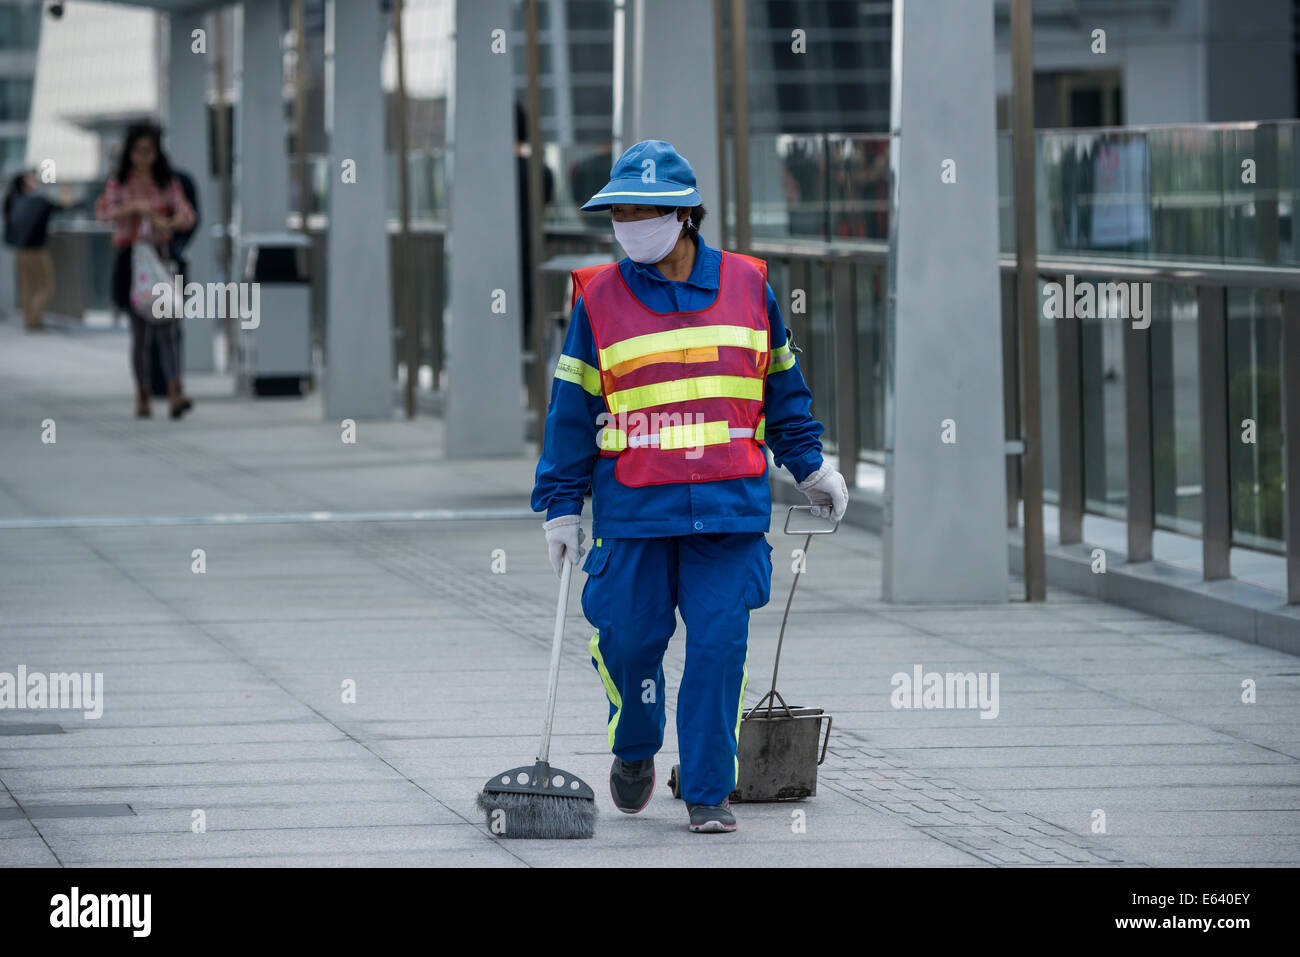 Female street cleaner wearing a safety vest, mask and holding a sweeping tool, Shanghai, China - Stock Image